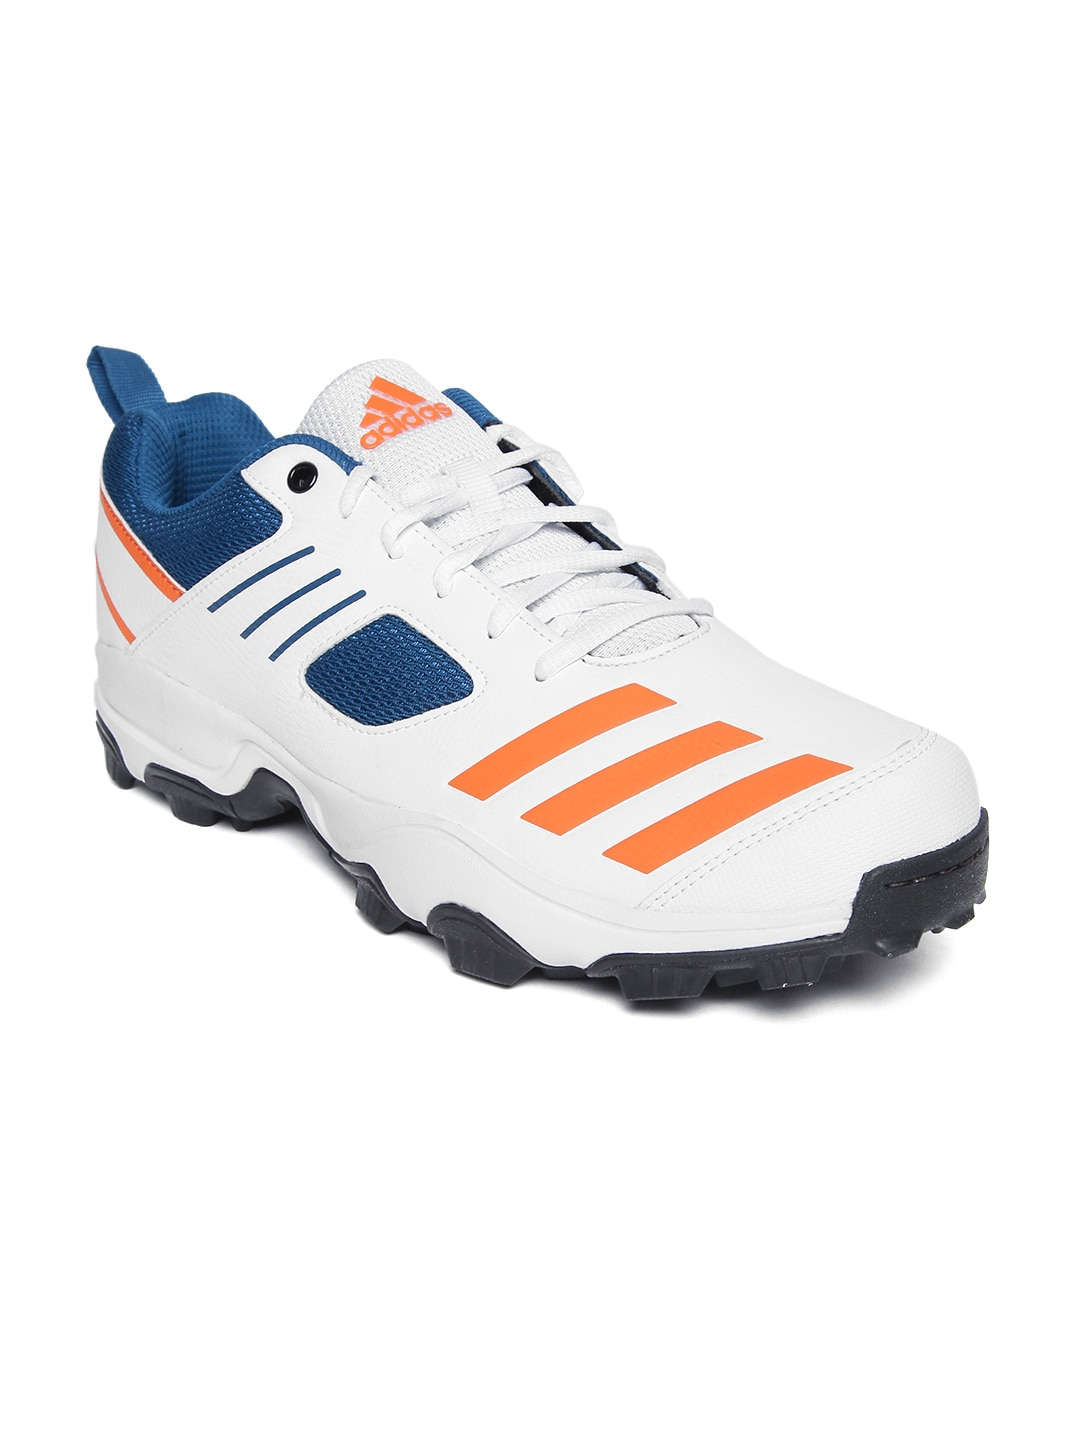 5e83751a6 Adidas Football Shoes - Buy Adidas Football Shoes for Men Online in India